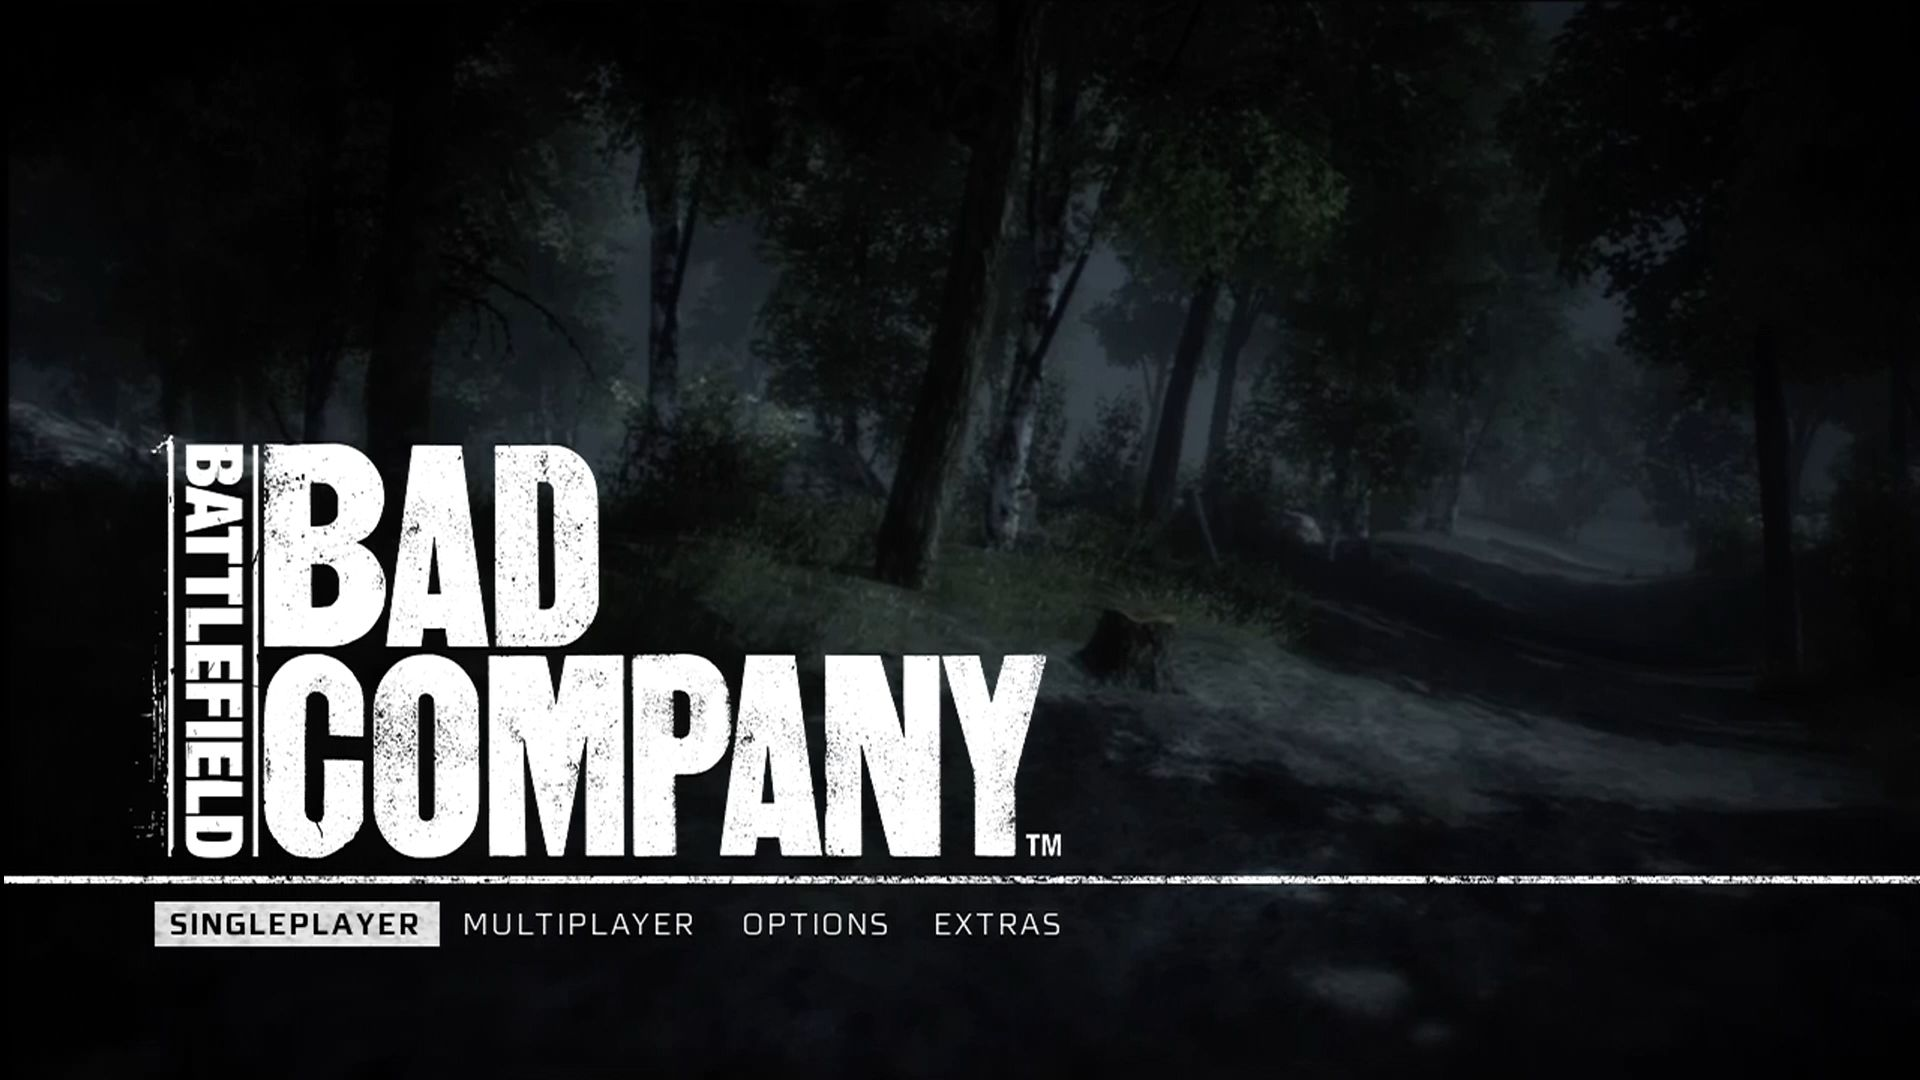 Battlefield: Bad Company Xbox 360 Main menu.